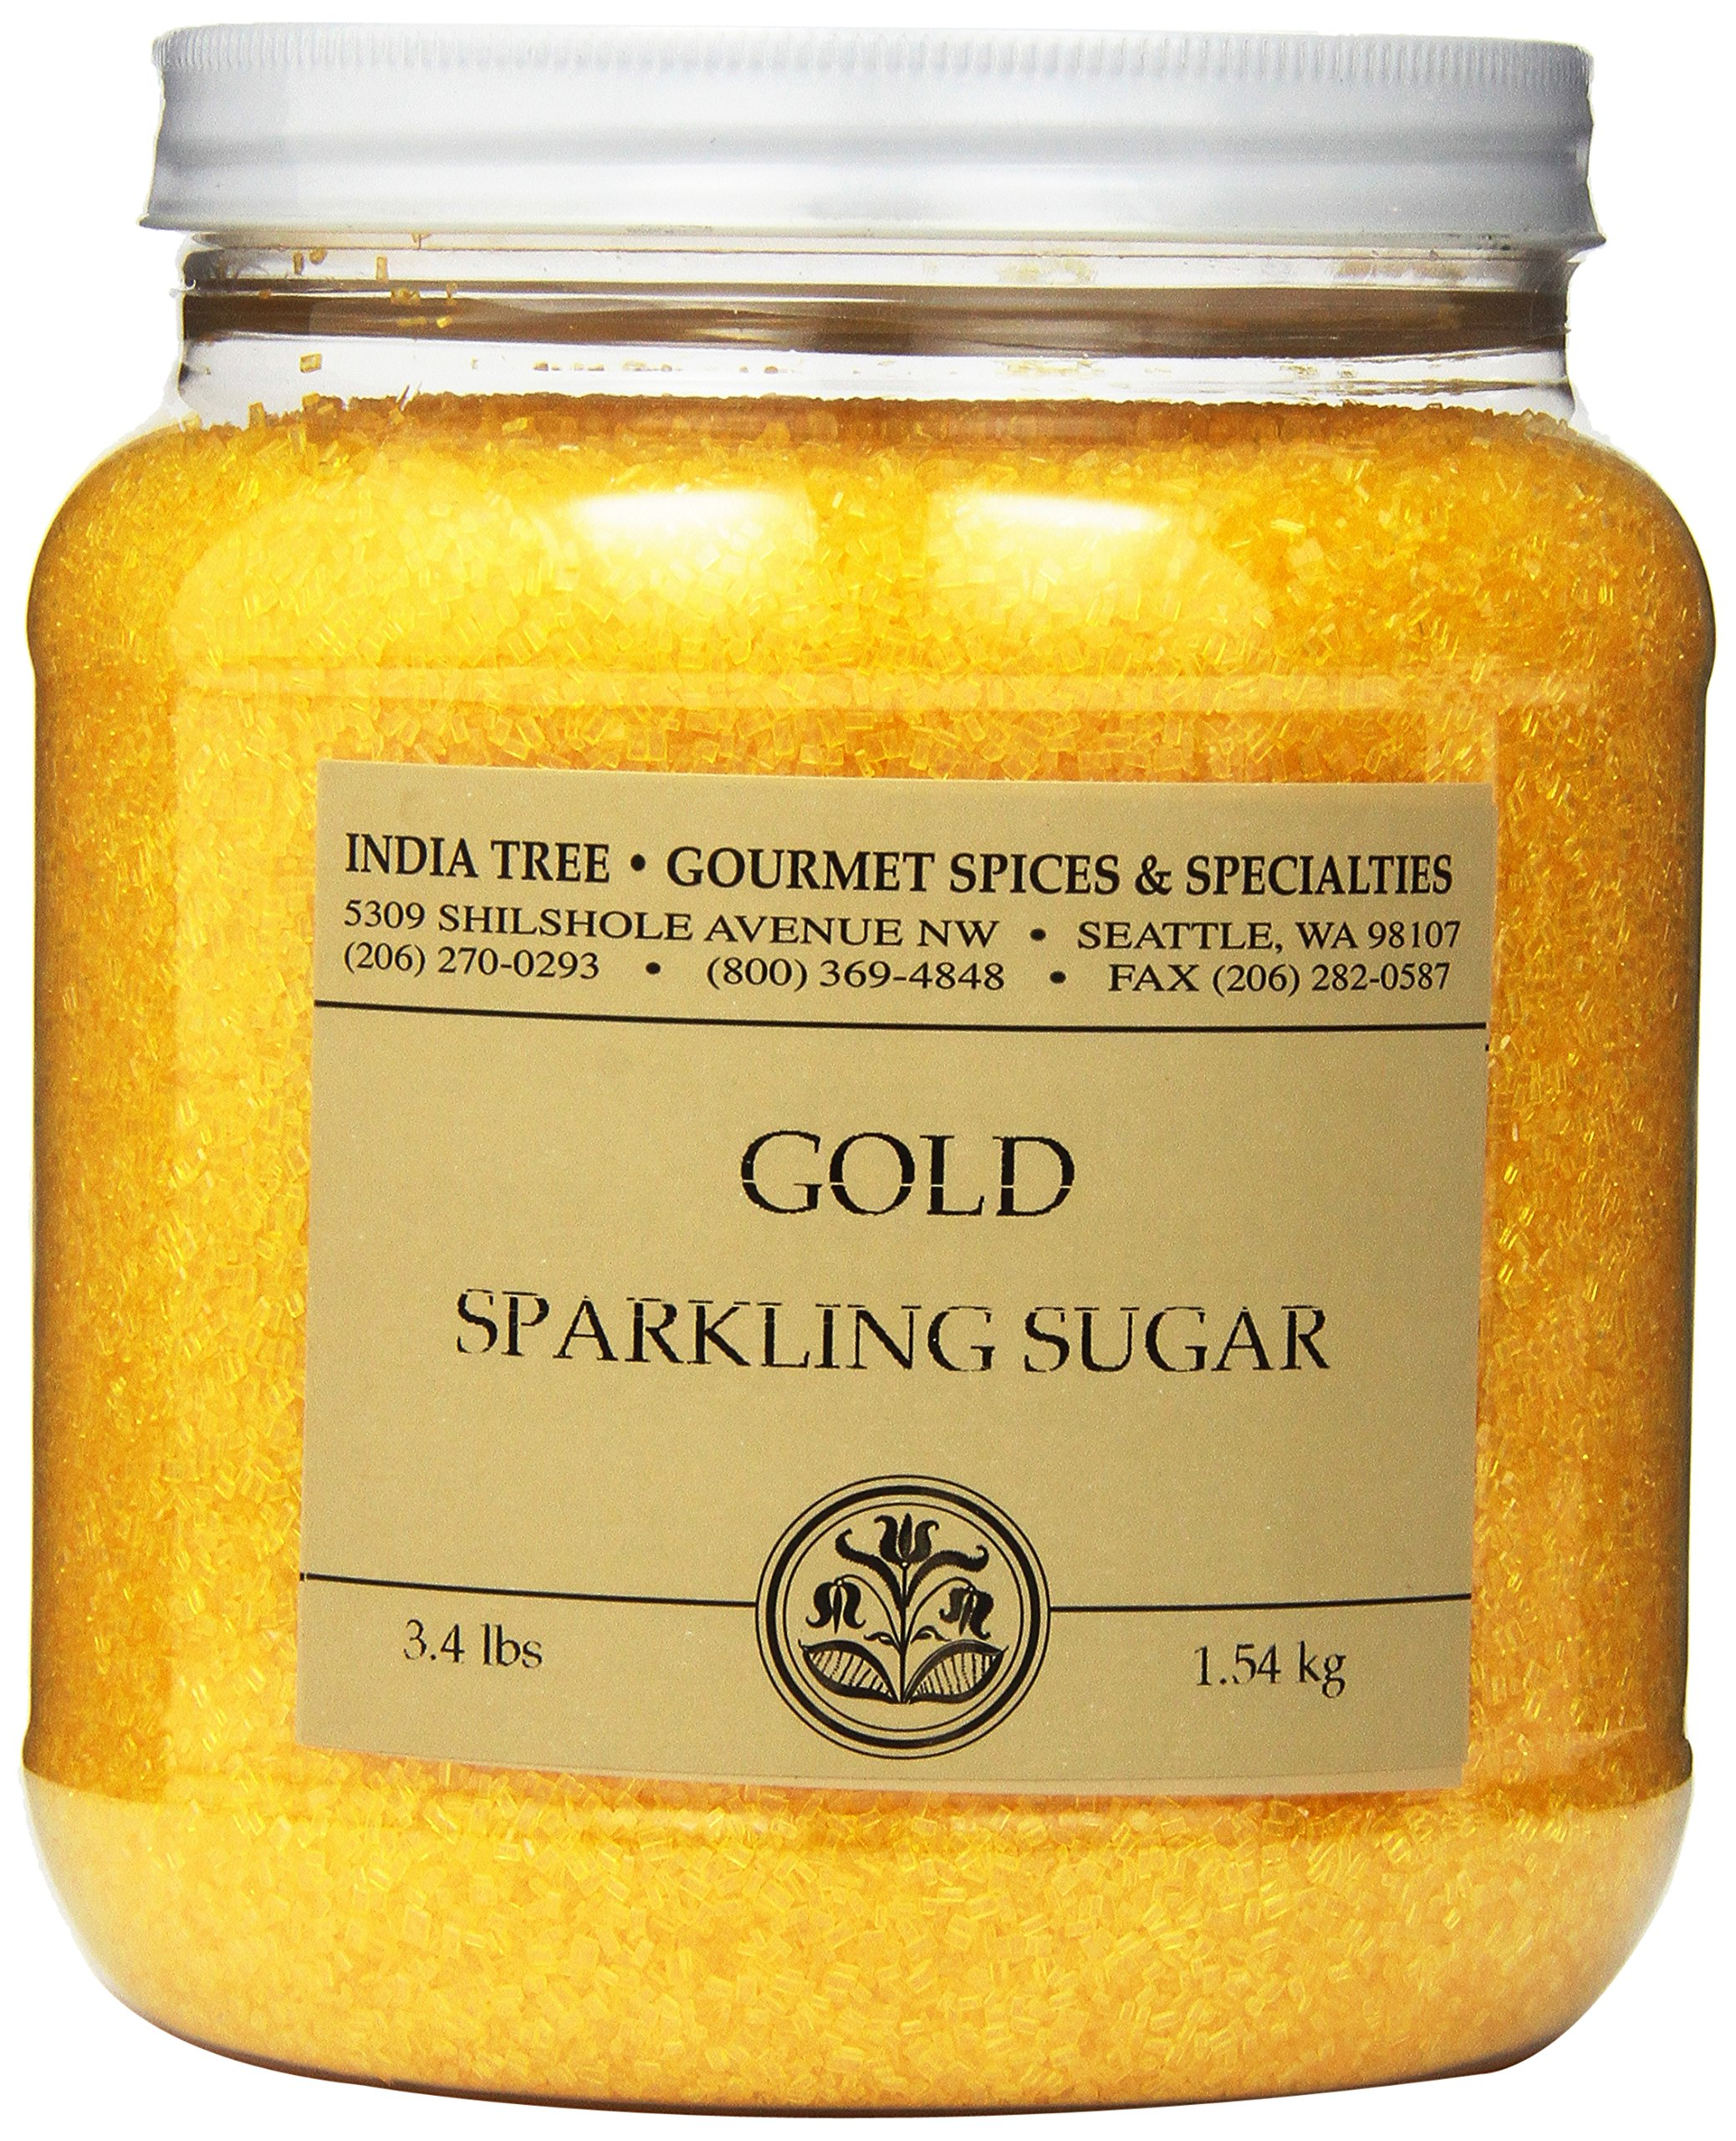 India Tree Star Gold Sparkling Sugar, 3.4 lb (Pack of 2) by India Tree